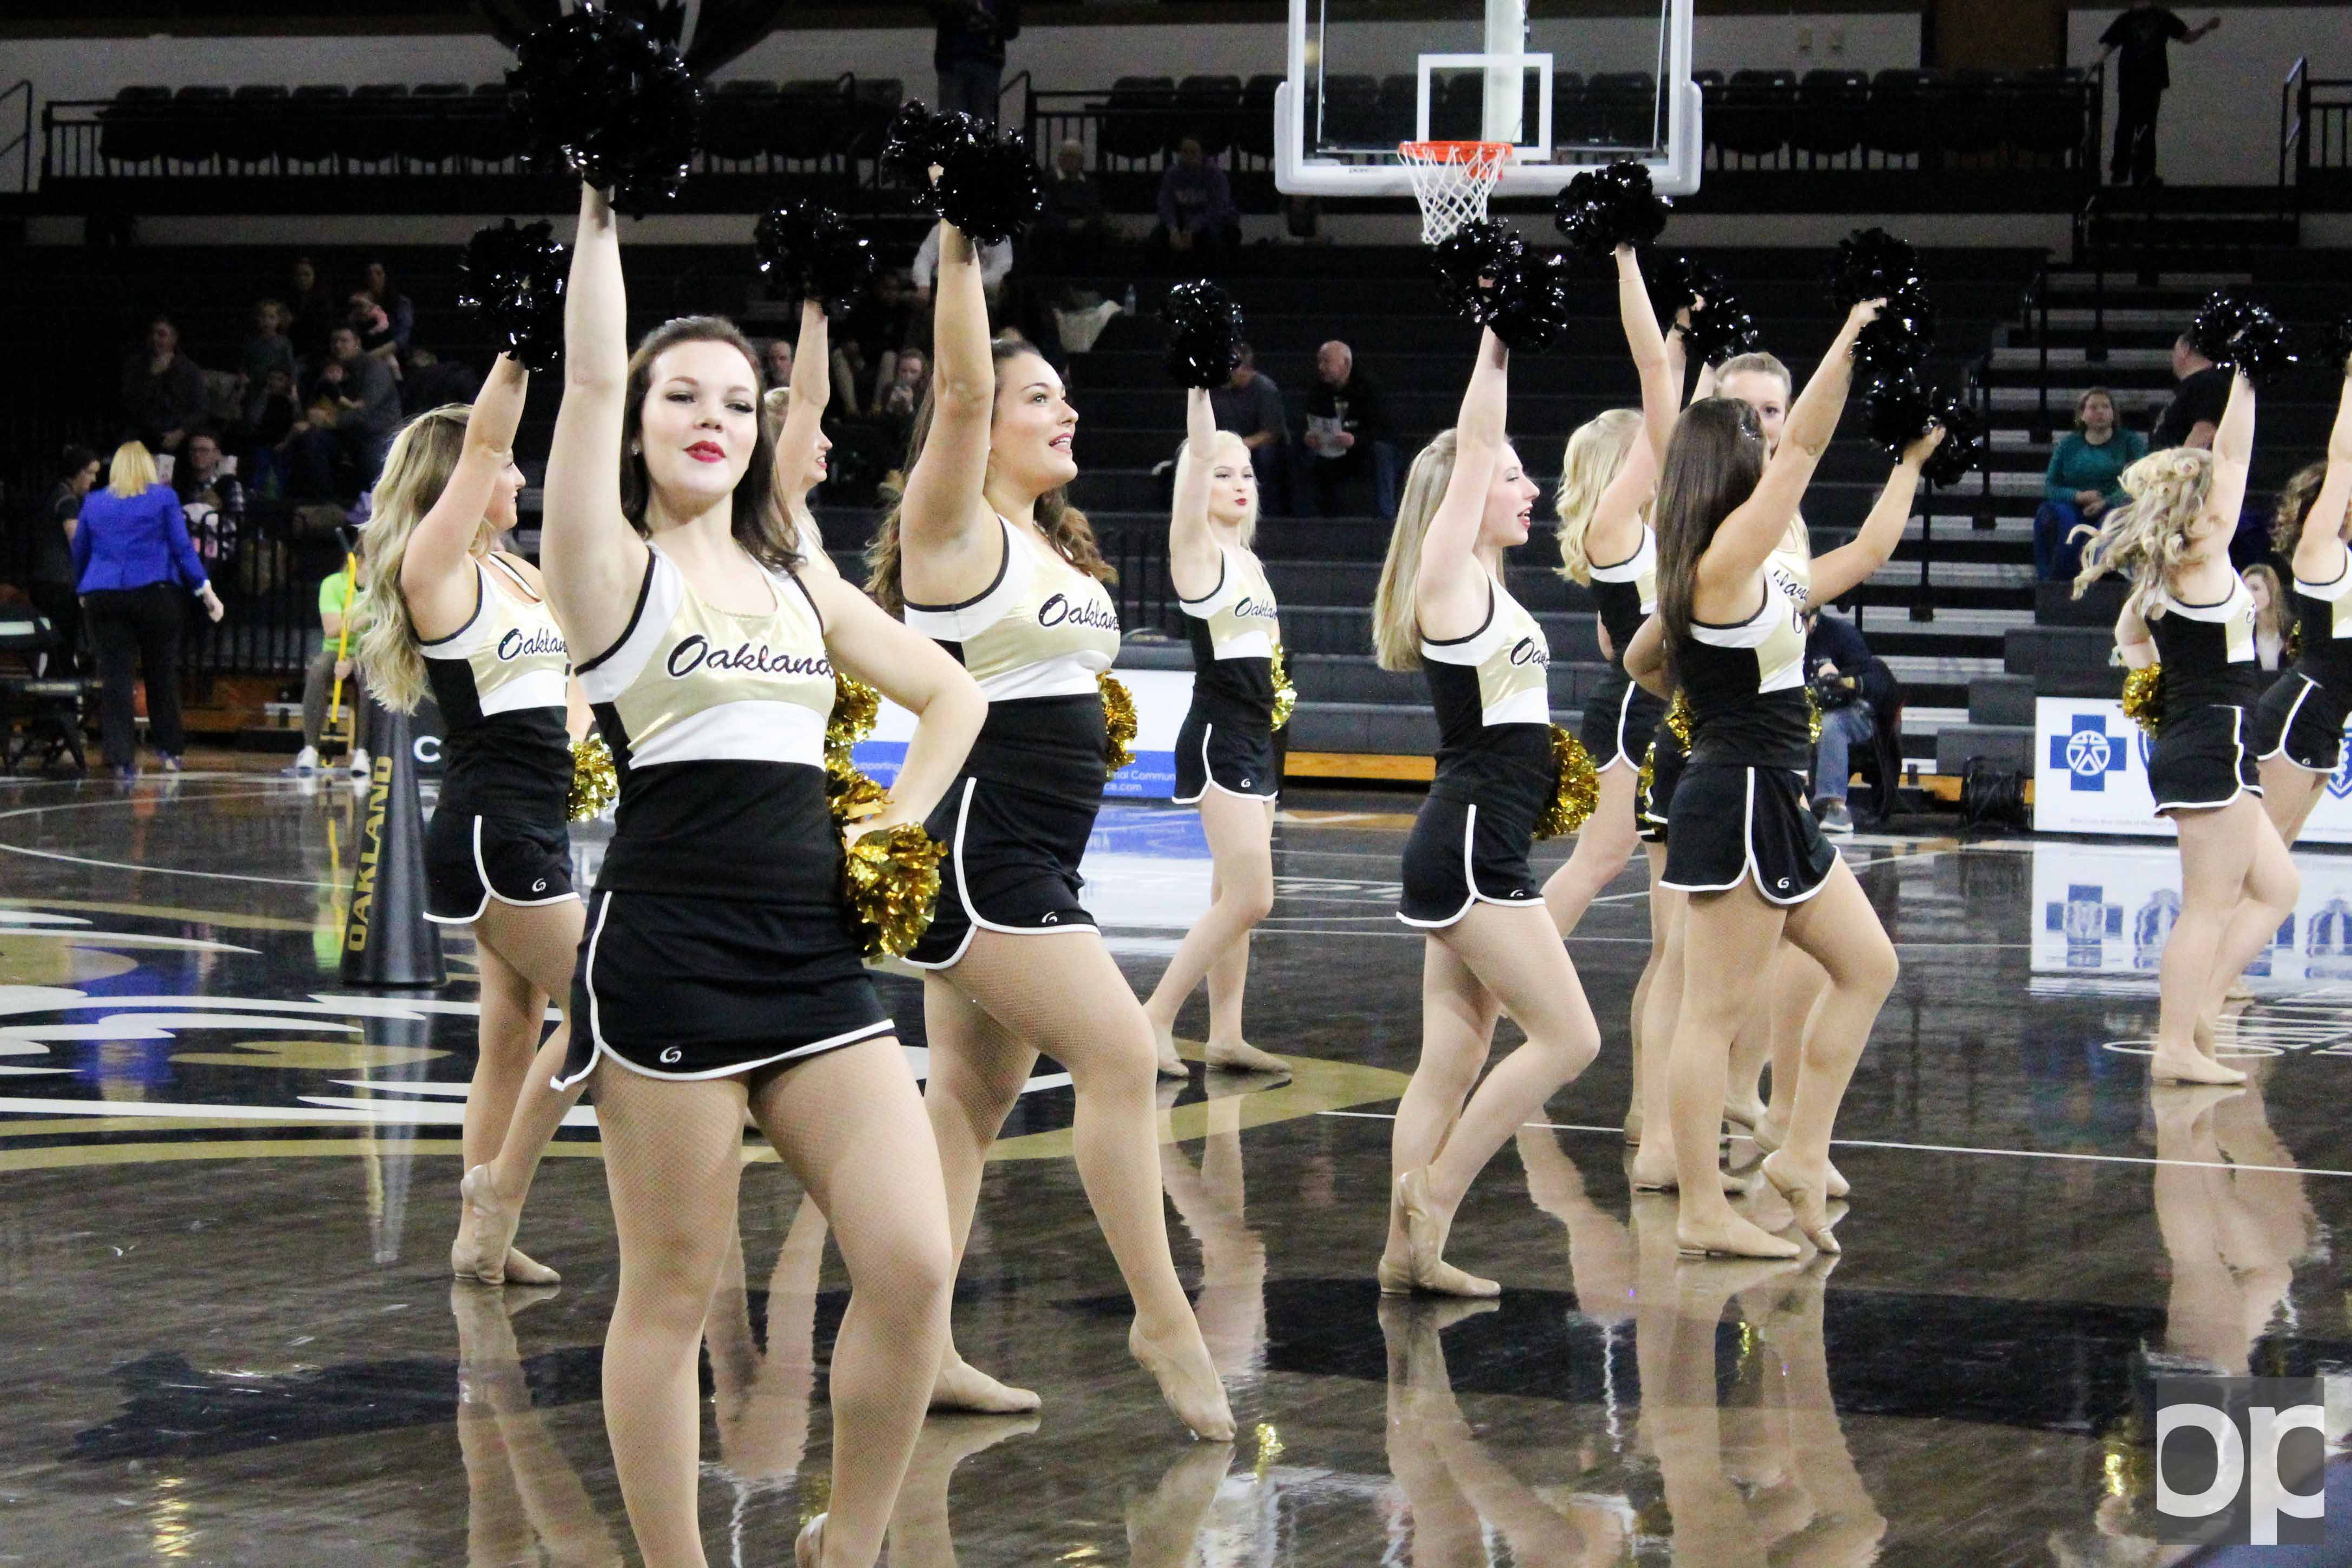 The Oakland dance team performs at halftime during a women's basketball game at the O'rena.